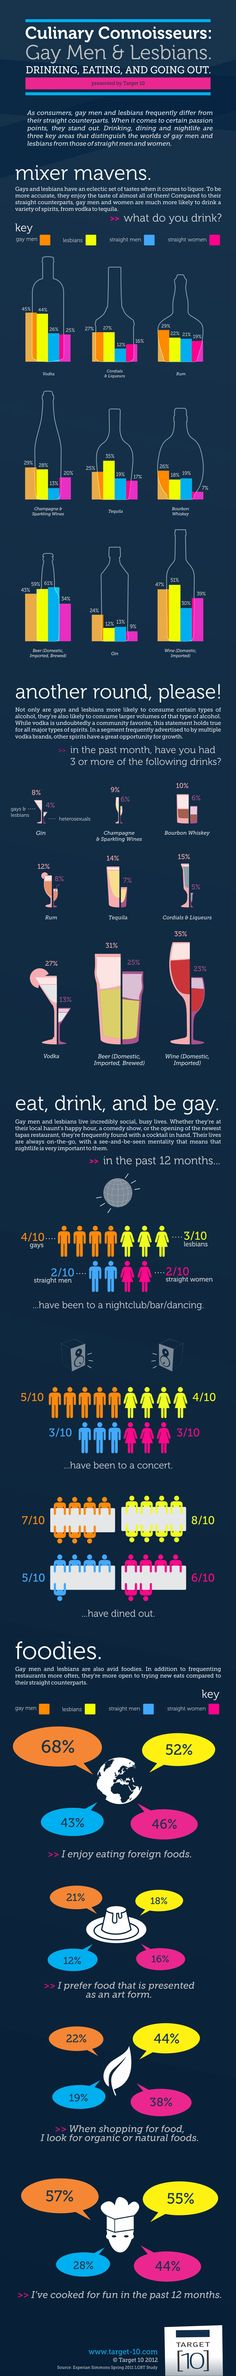 INFOGRAPHIC - Gay men and Lesbians are evidently passionate consumers.They  enjoy indulging themselves with